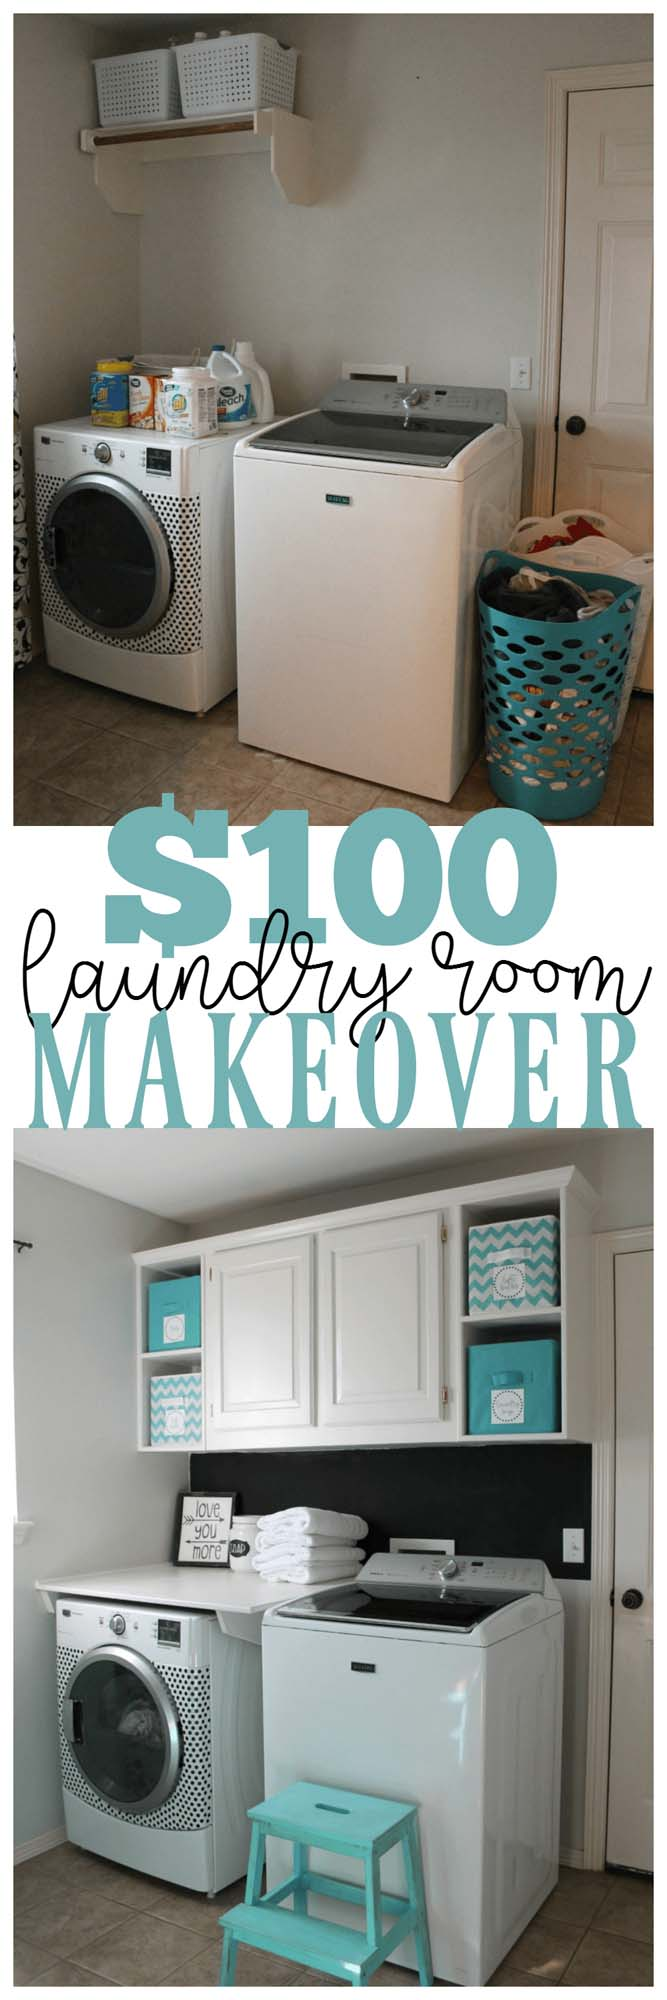 Simple yet Effective Cabinet Addition #laundryroom #makeover #decorhomeideas